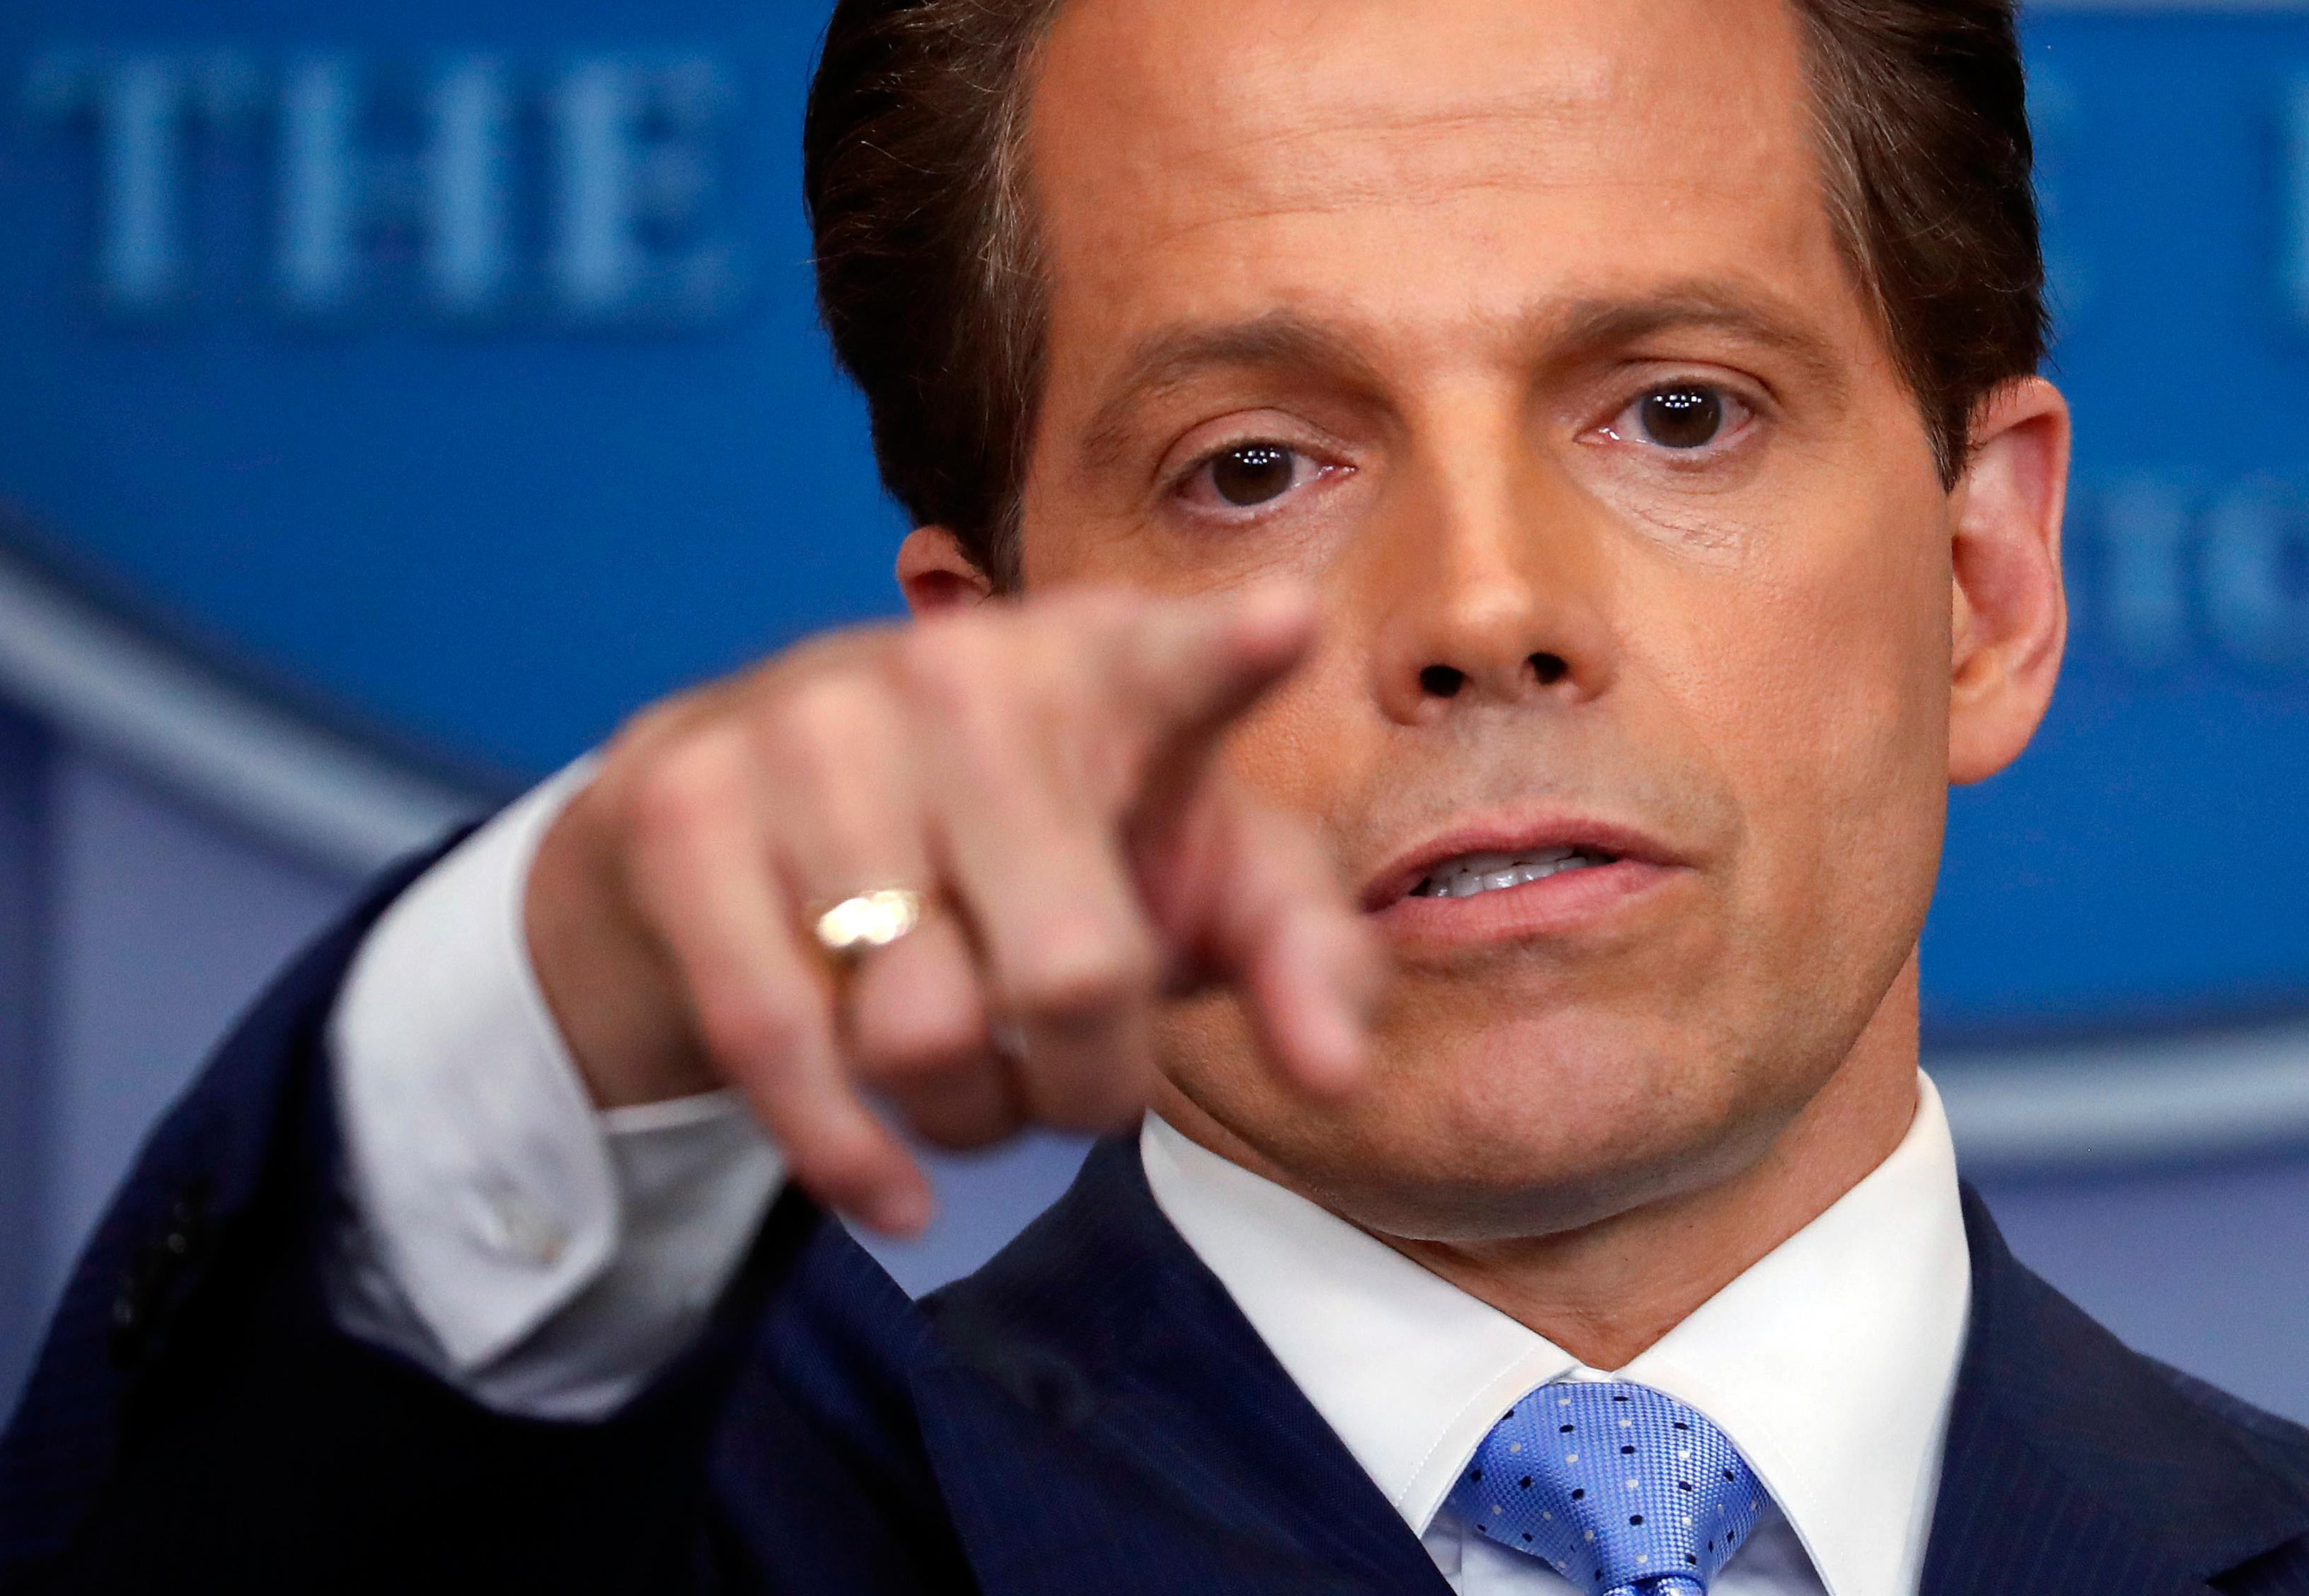 In this July 21, 2017 photo, incoming White House communications director Anthony Scaramucci points as he answers questions from members of the media during the press briefing in the Brady Press Briefing room of the White House in Washington.  Scaramucci is out as White House communications director after just 11 days on the job.  A person close to Scaramucci confirmed the staffing change just hours after President Donald Trump's new chief of staff, John Kelly, was sworn into office.  (AP Photo/Pablo Martinez Monsivais)